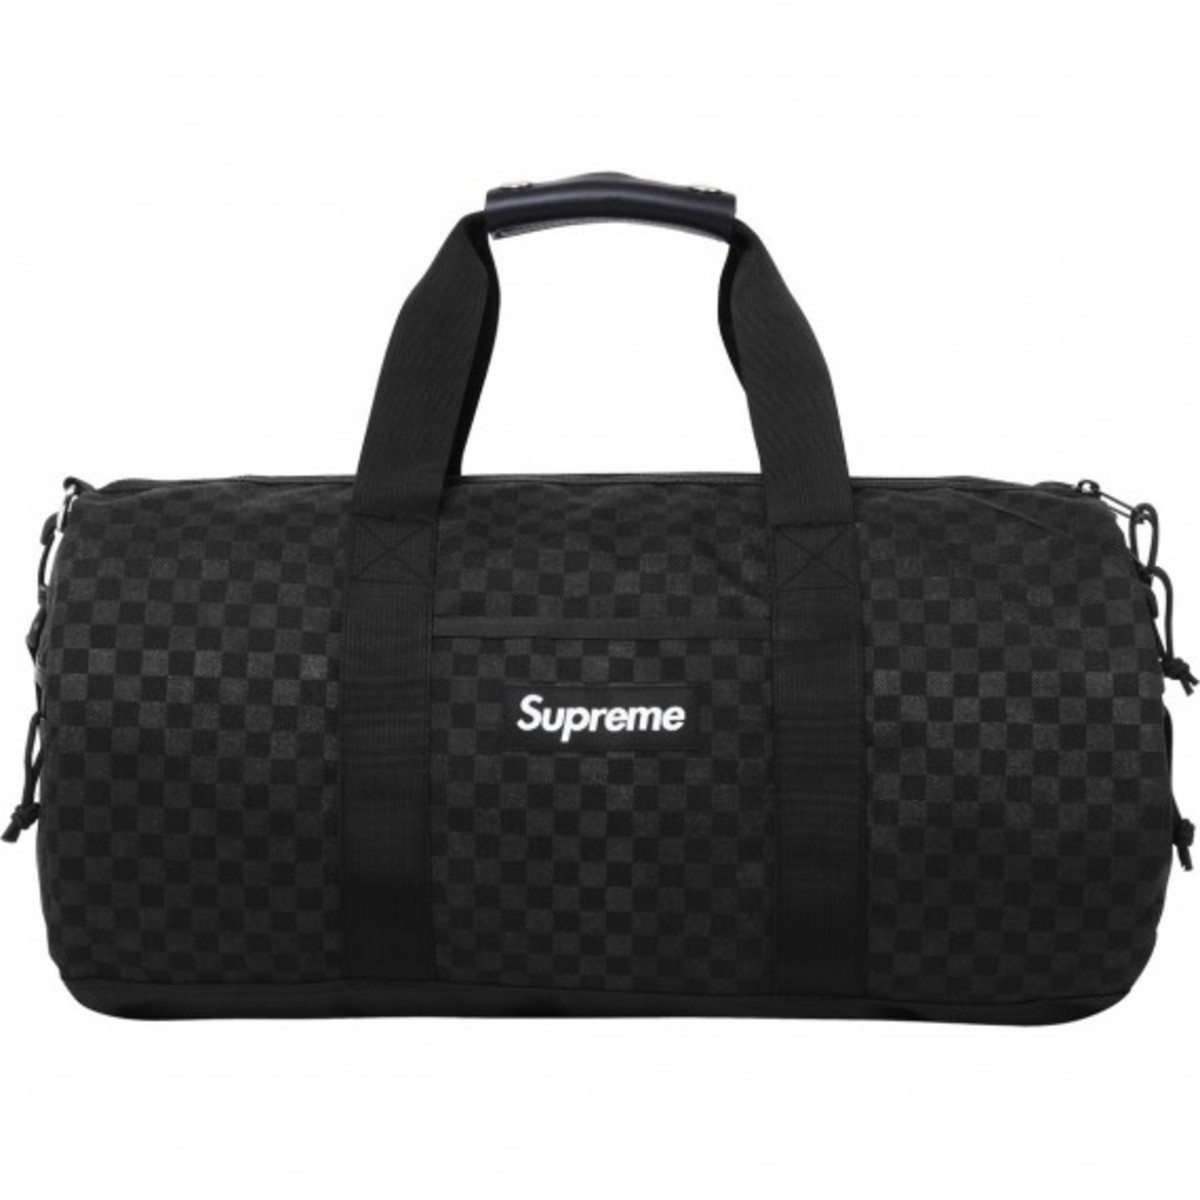 supreme-fall-winter-2011-collection-available-now-27